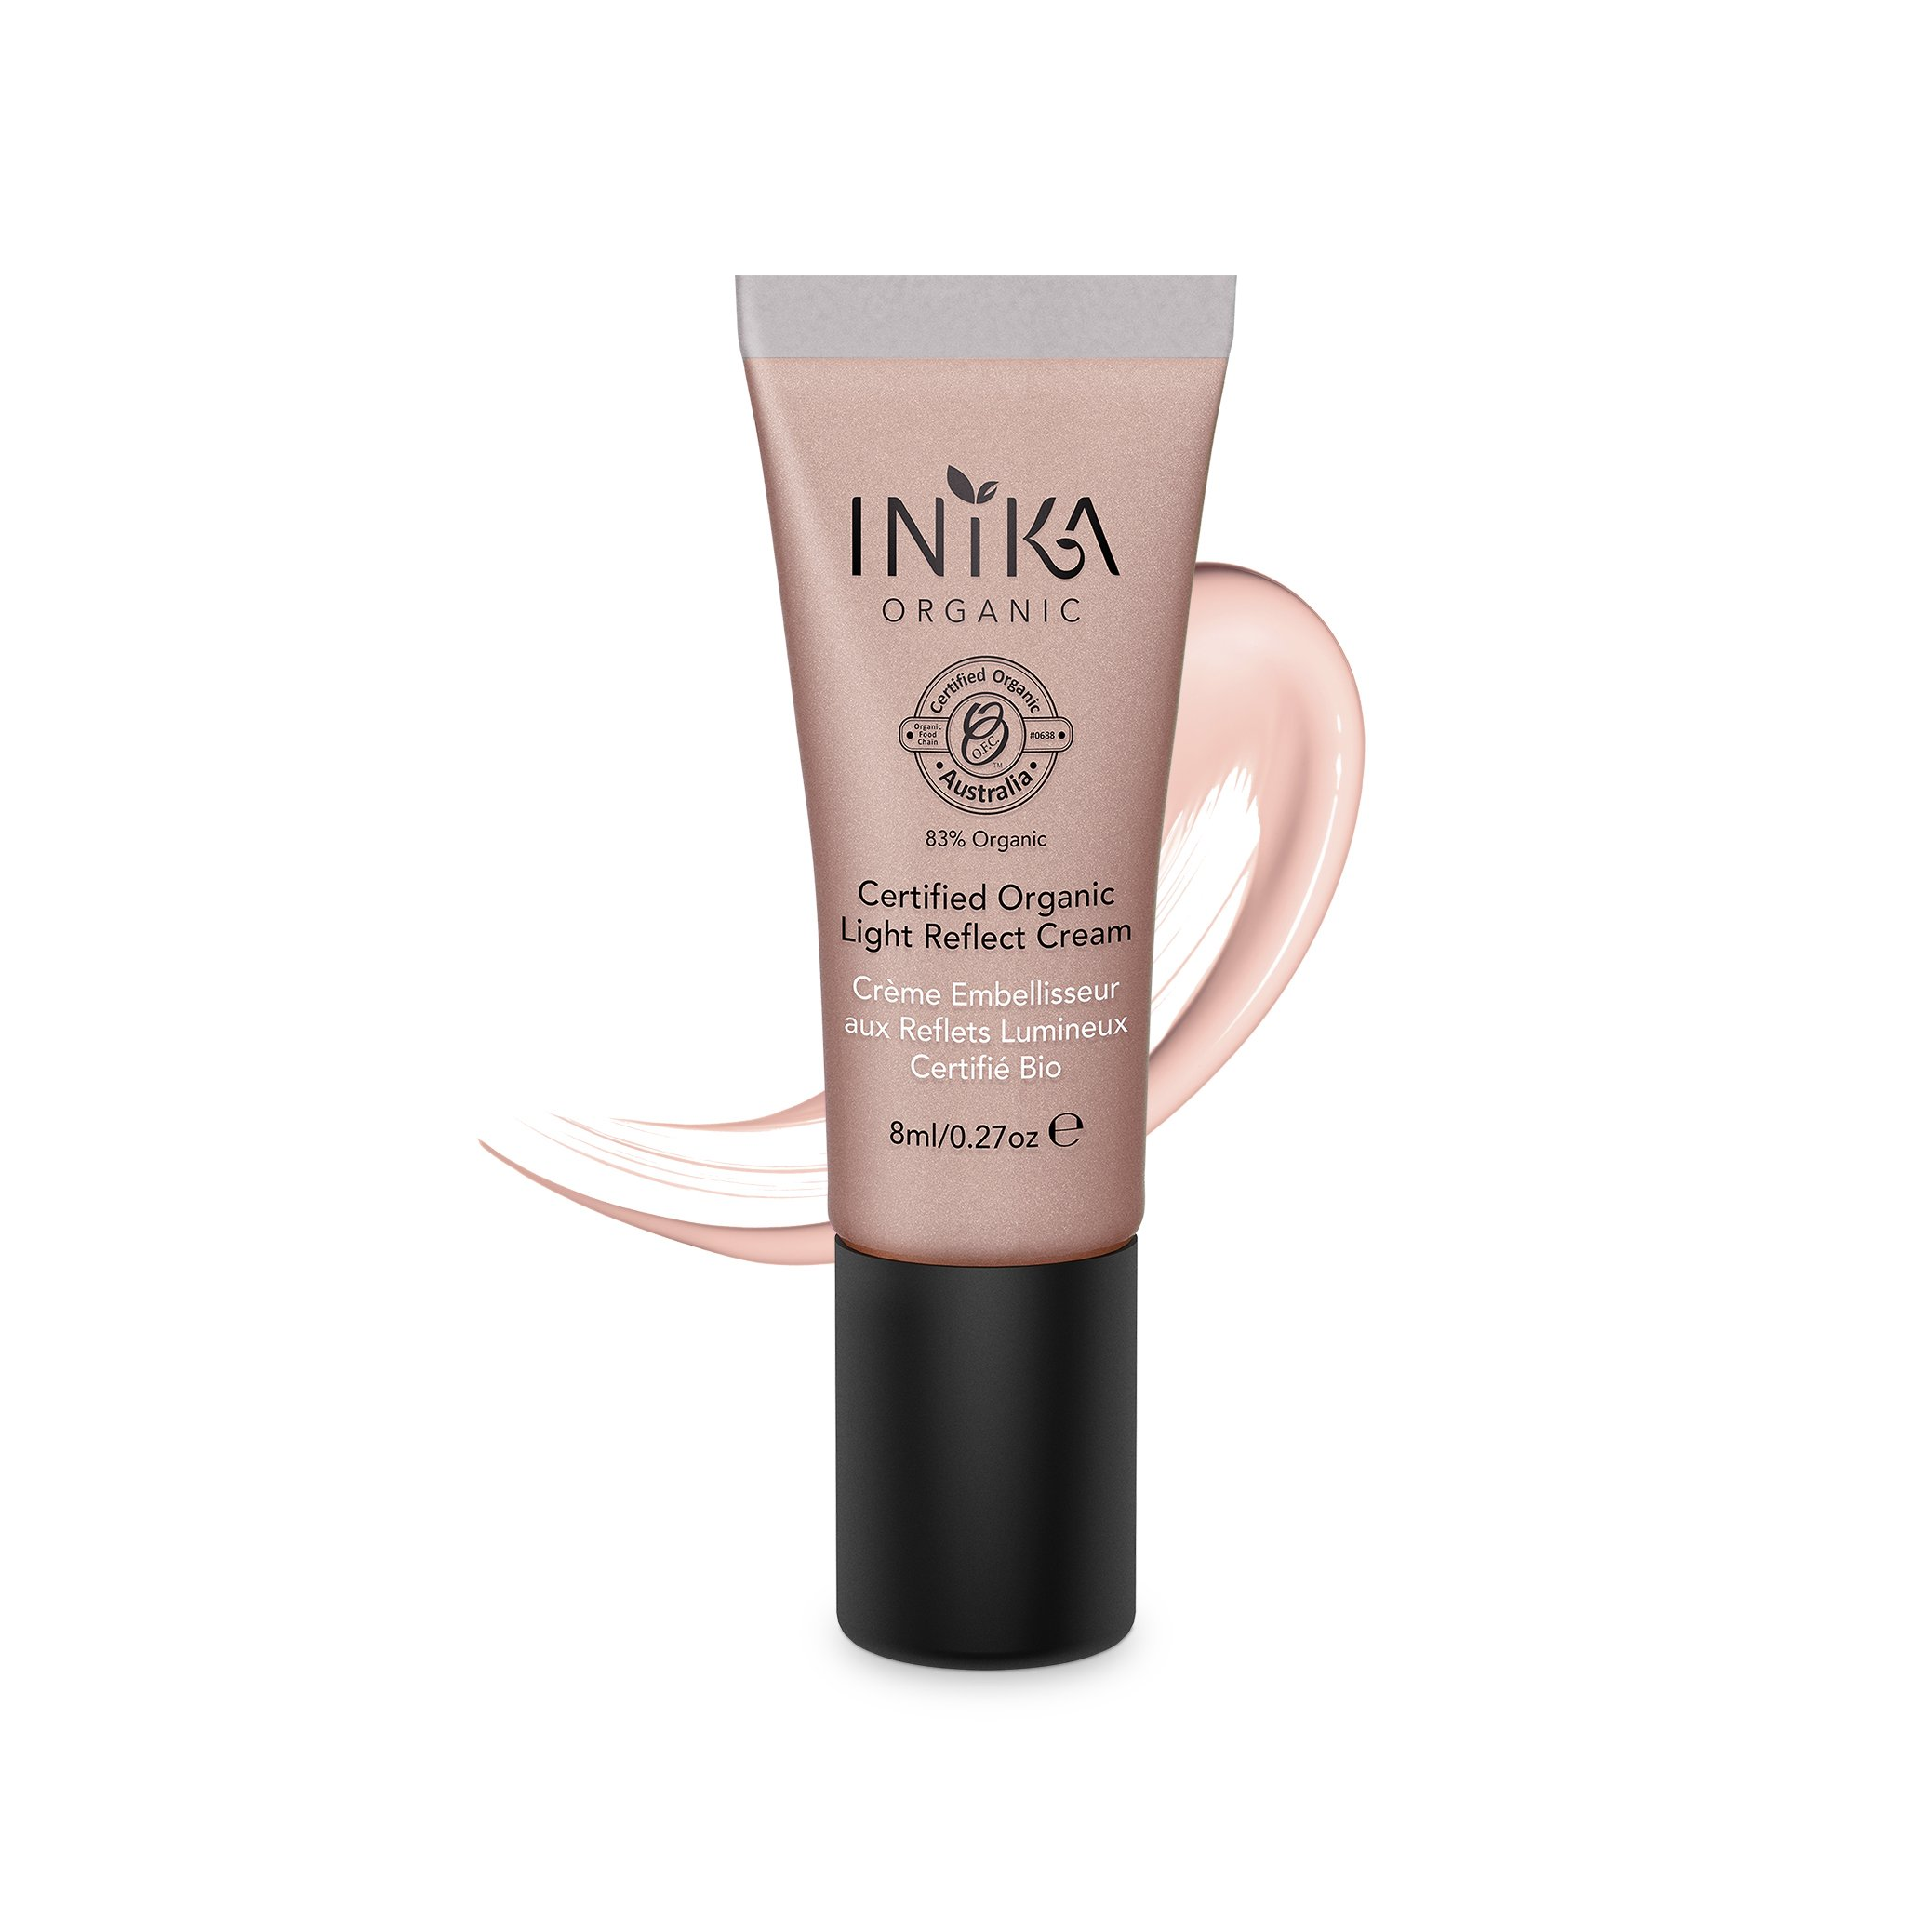 INIKA Certified Organic Light Reflect Cream, All Natural Make-up Highlighter, Organic Beauty Illuminator, Aloe Vera, Vitamin A, C, E, Vegan, 8 ml (0.27 oz)